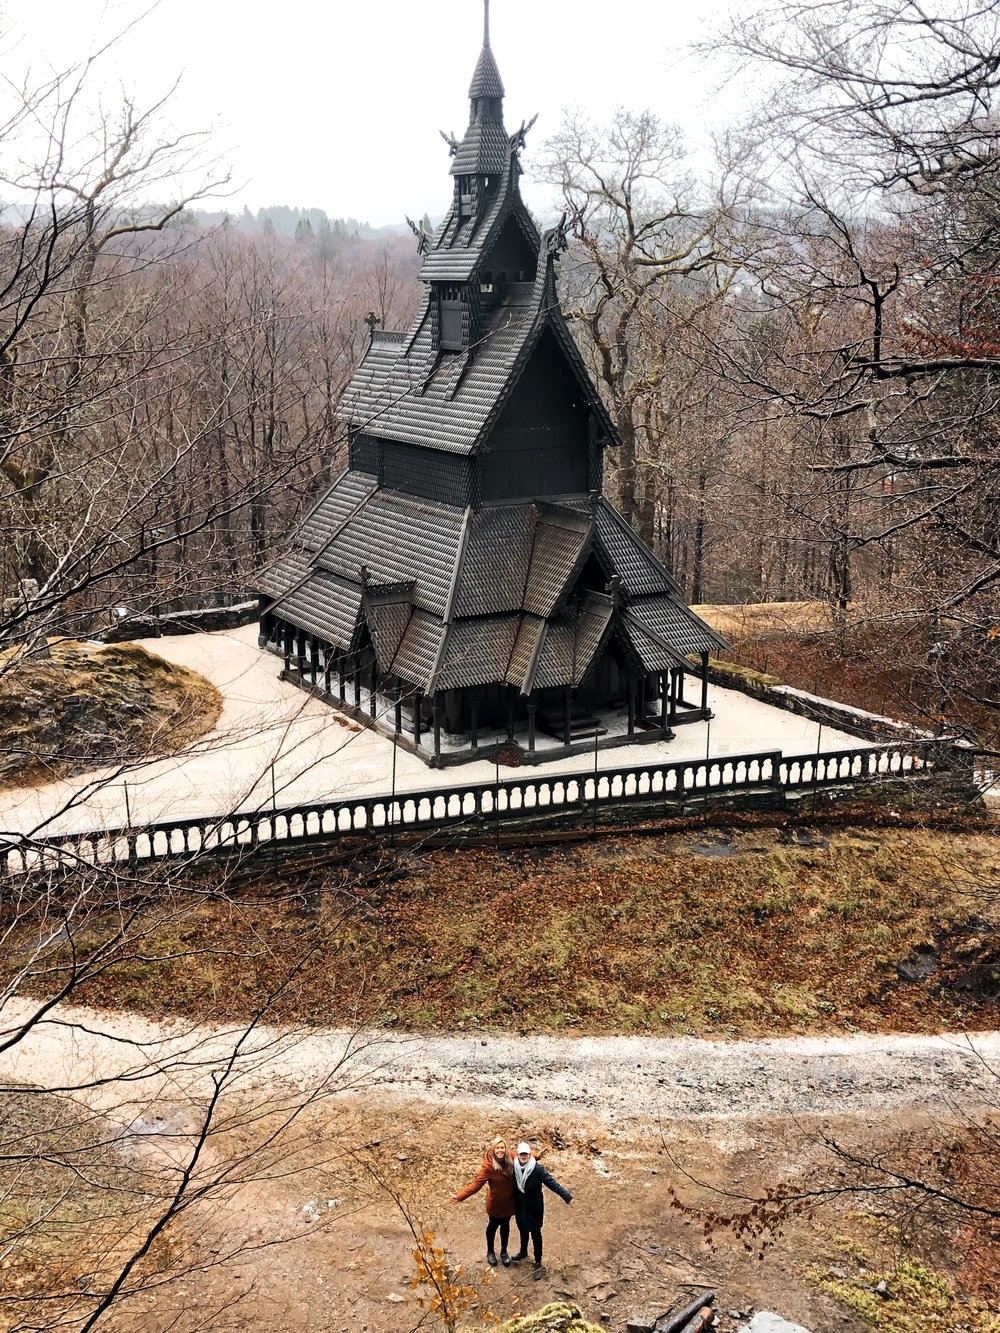 The gorgeous, unique stave church in Fantoft